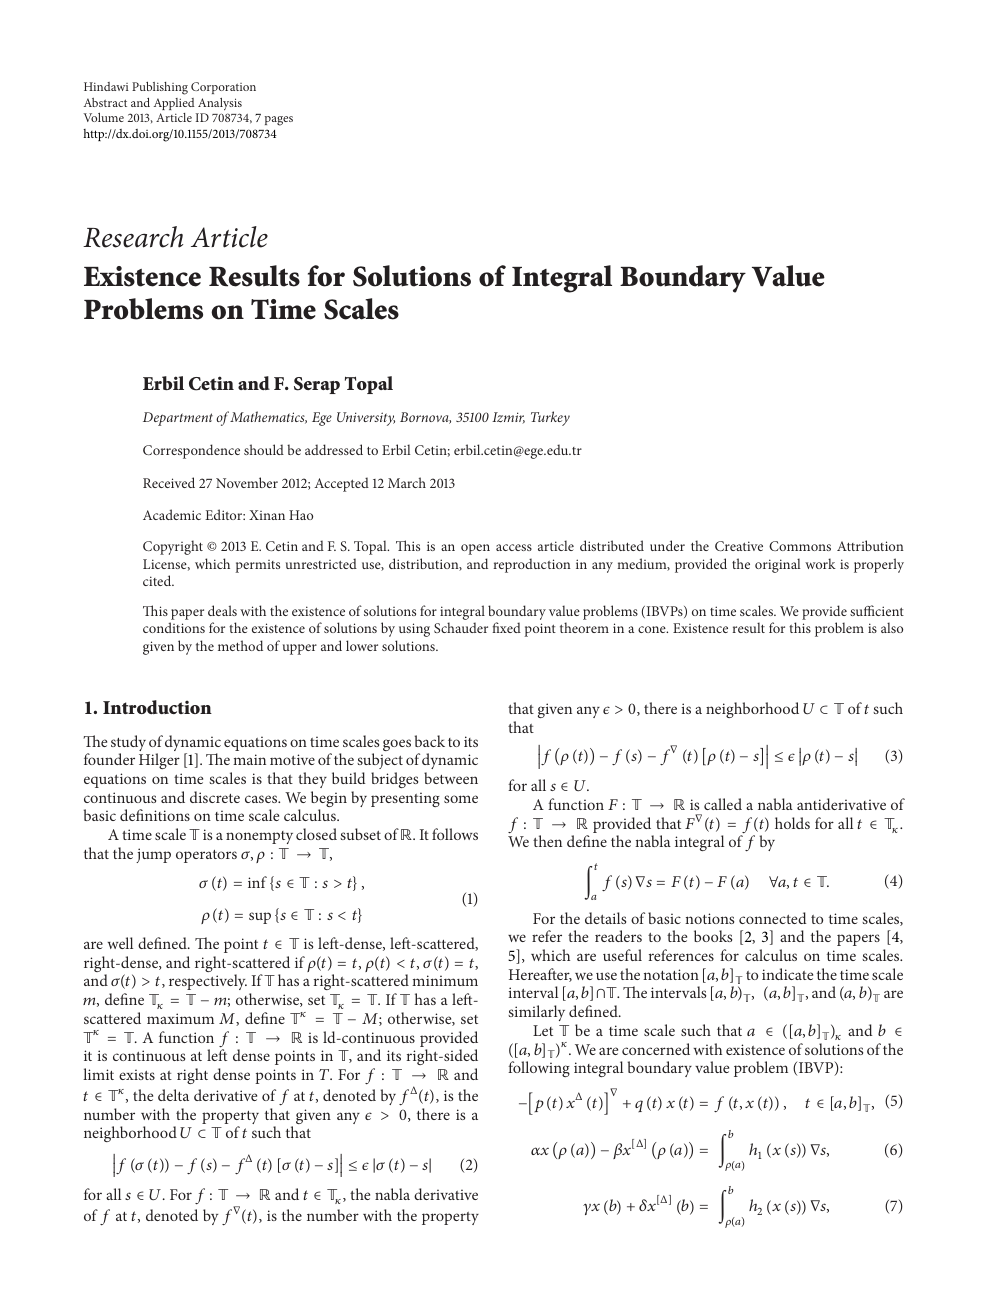 Existence Results for Solutions of Integral Boundary Value Problems